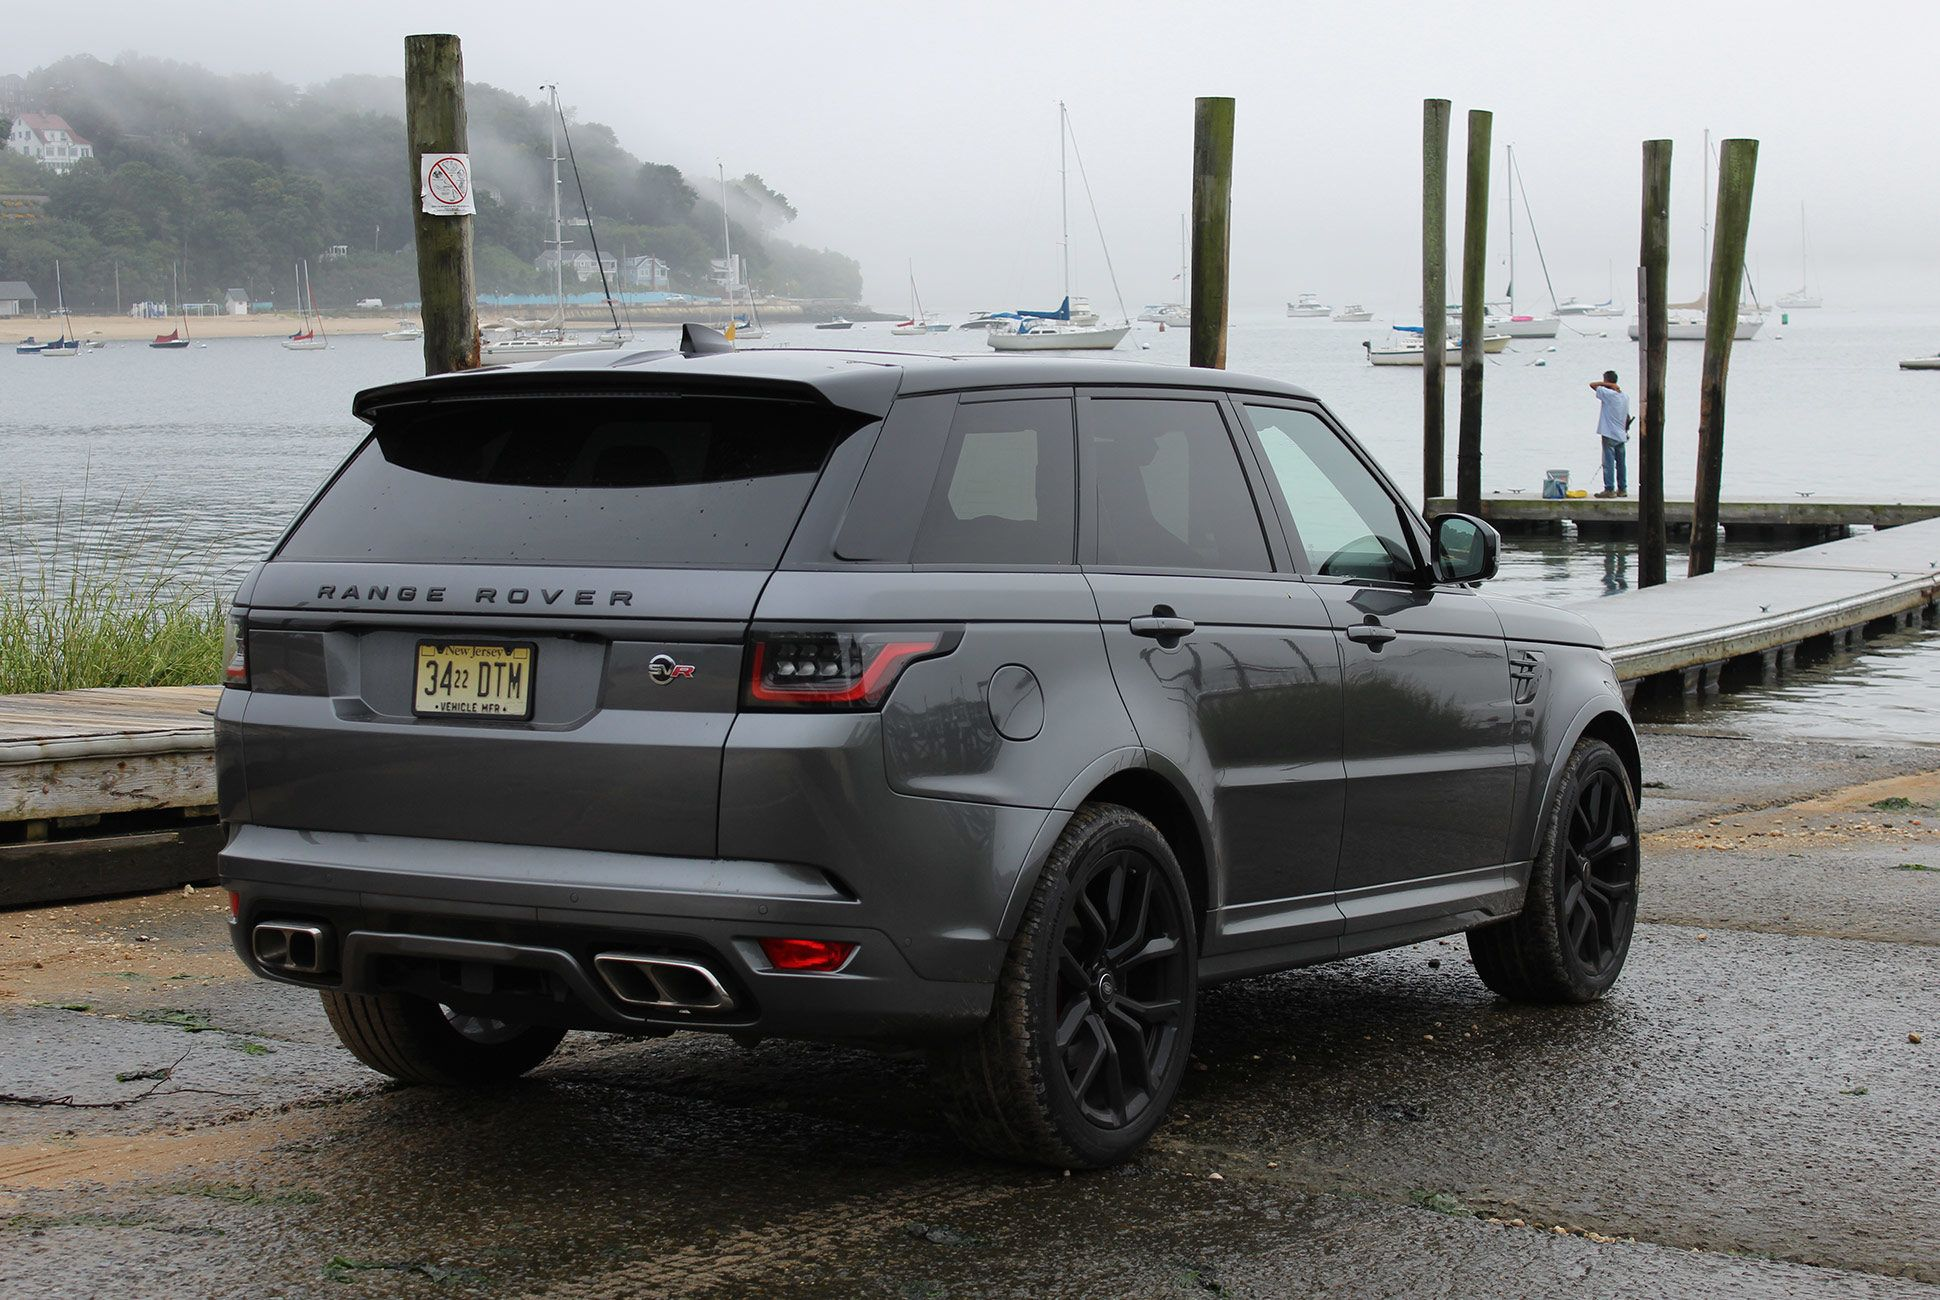 The 575 Horsepower Range Rover Svr Is An Exercise In Pure